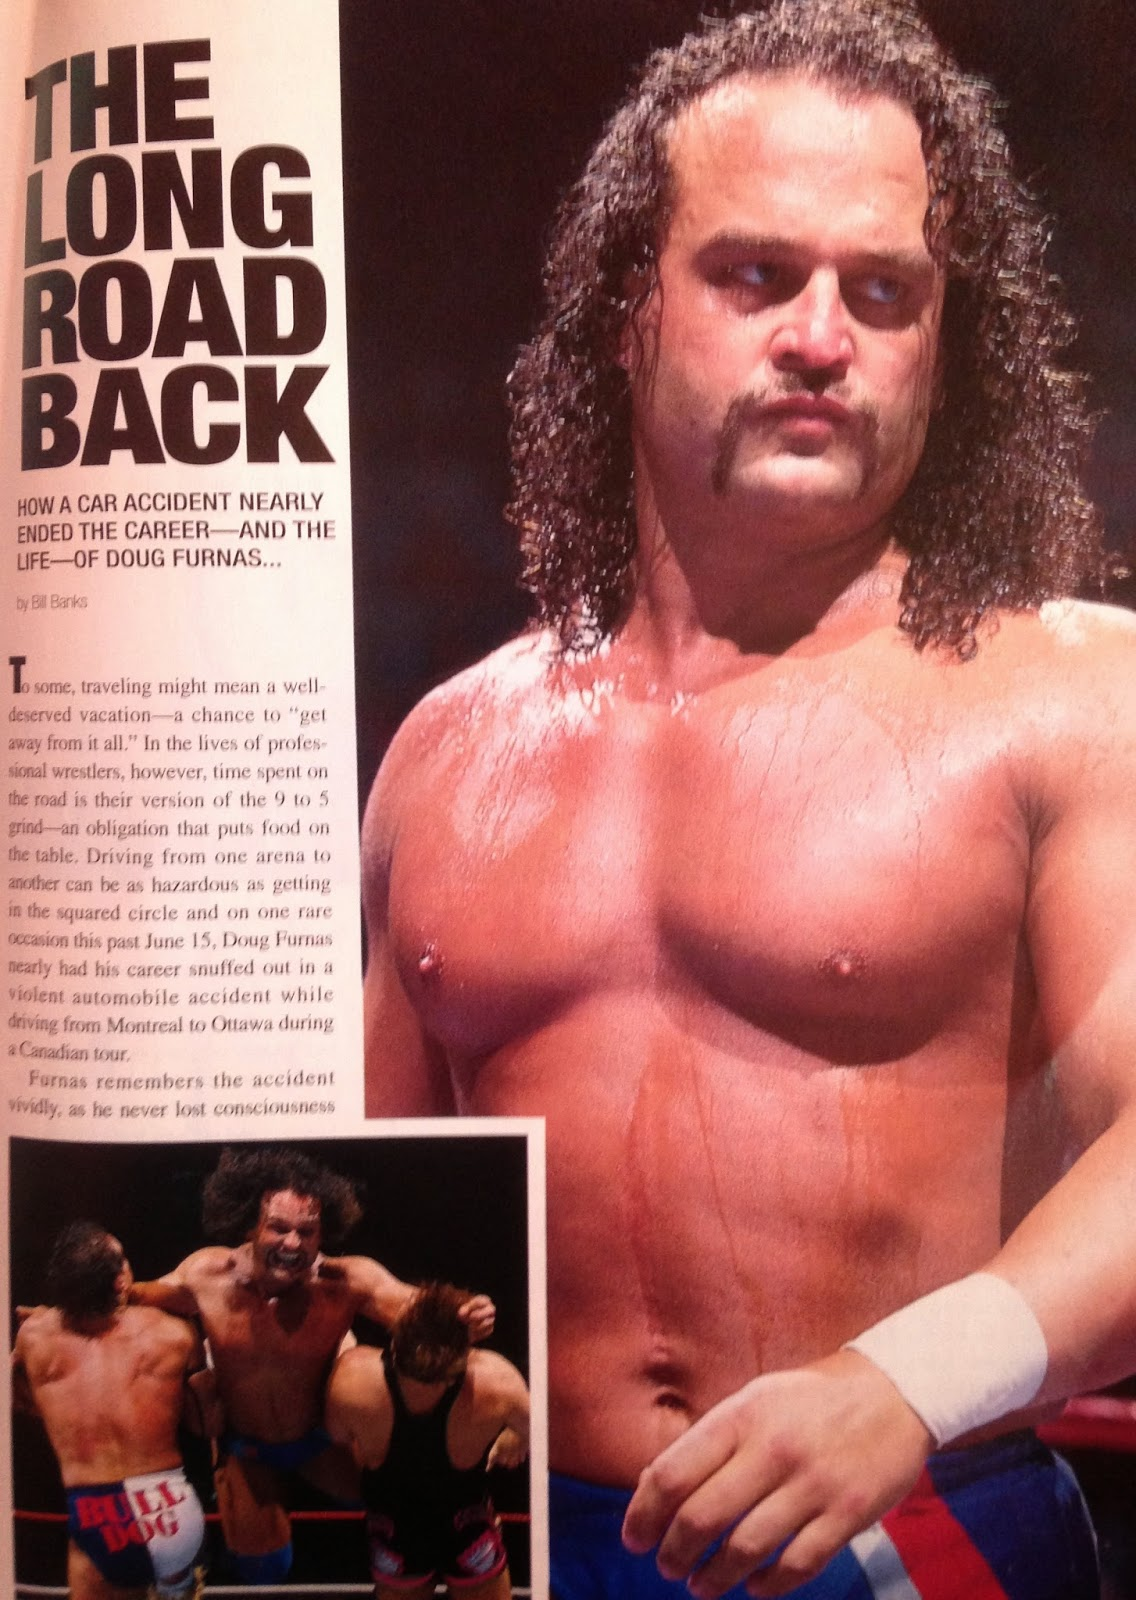 WWE: WWF RAW MAGAZINE - January 1998 - A report on the car crash that nearly killed Doug Furnas